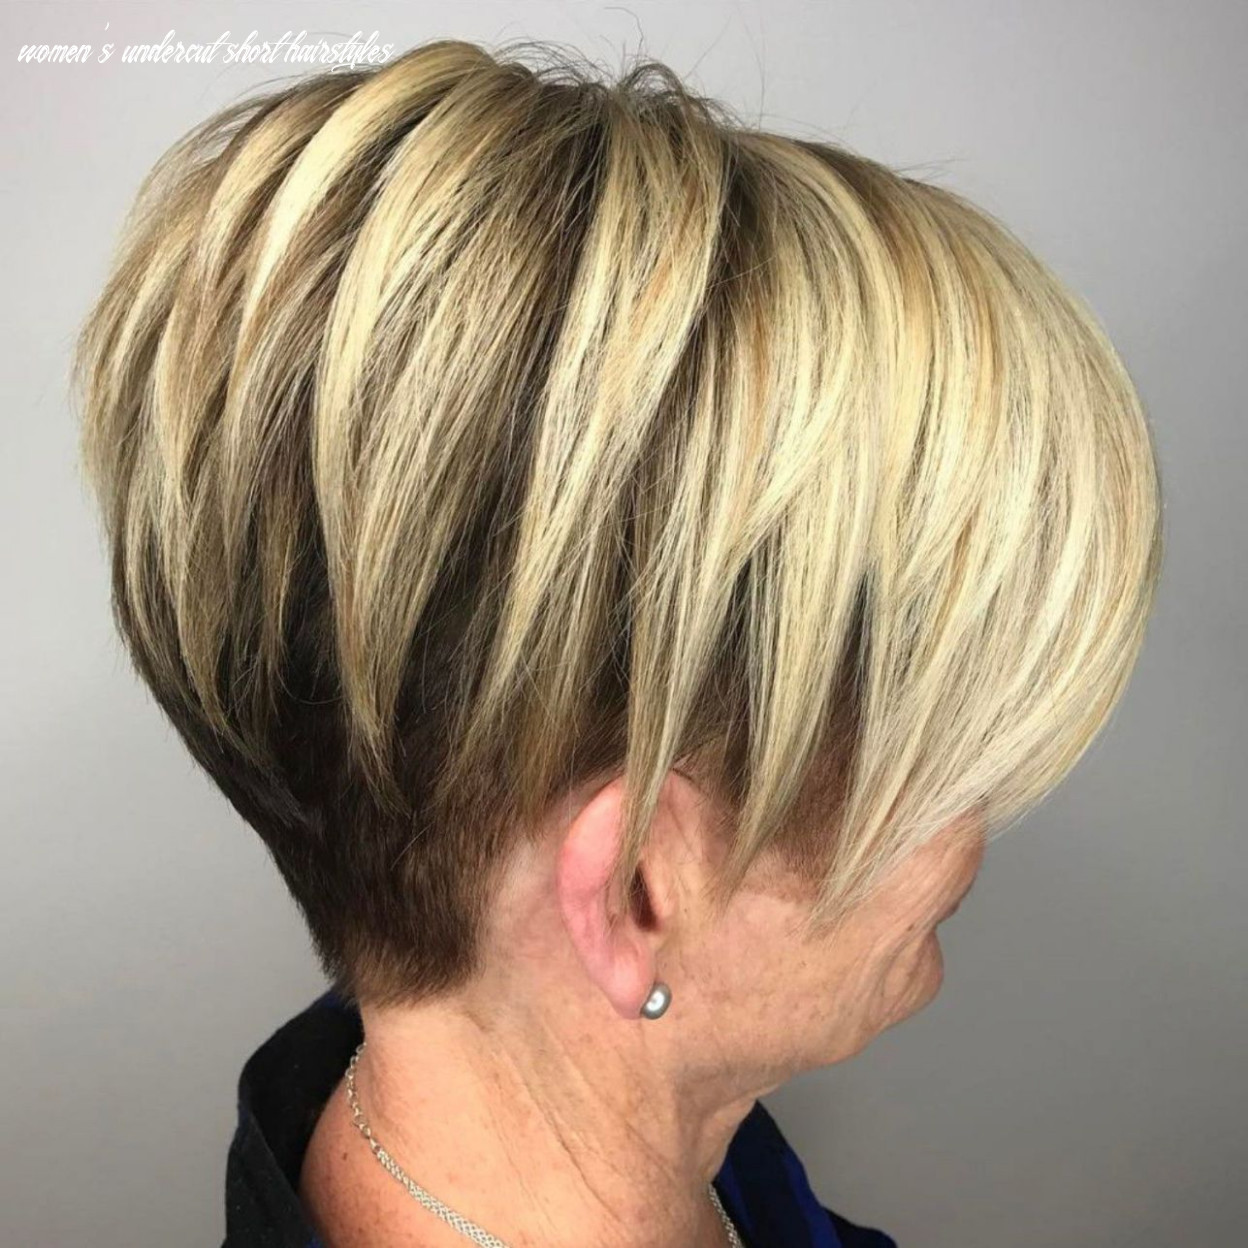 11 classy and simple short hairstyles for women over 11 | undercut